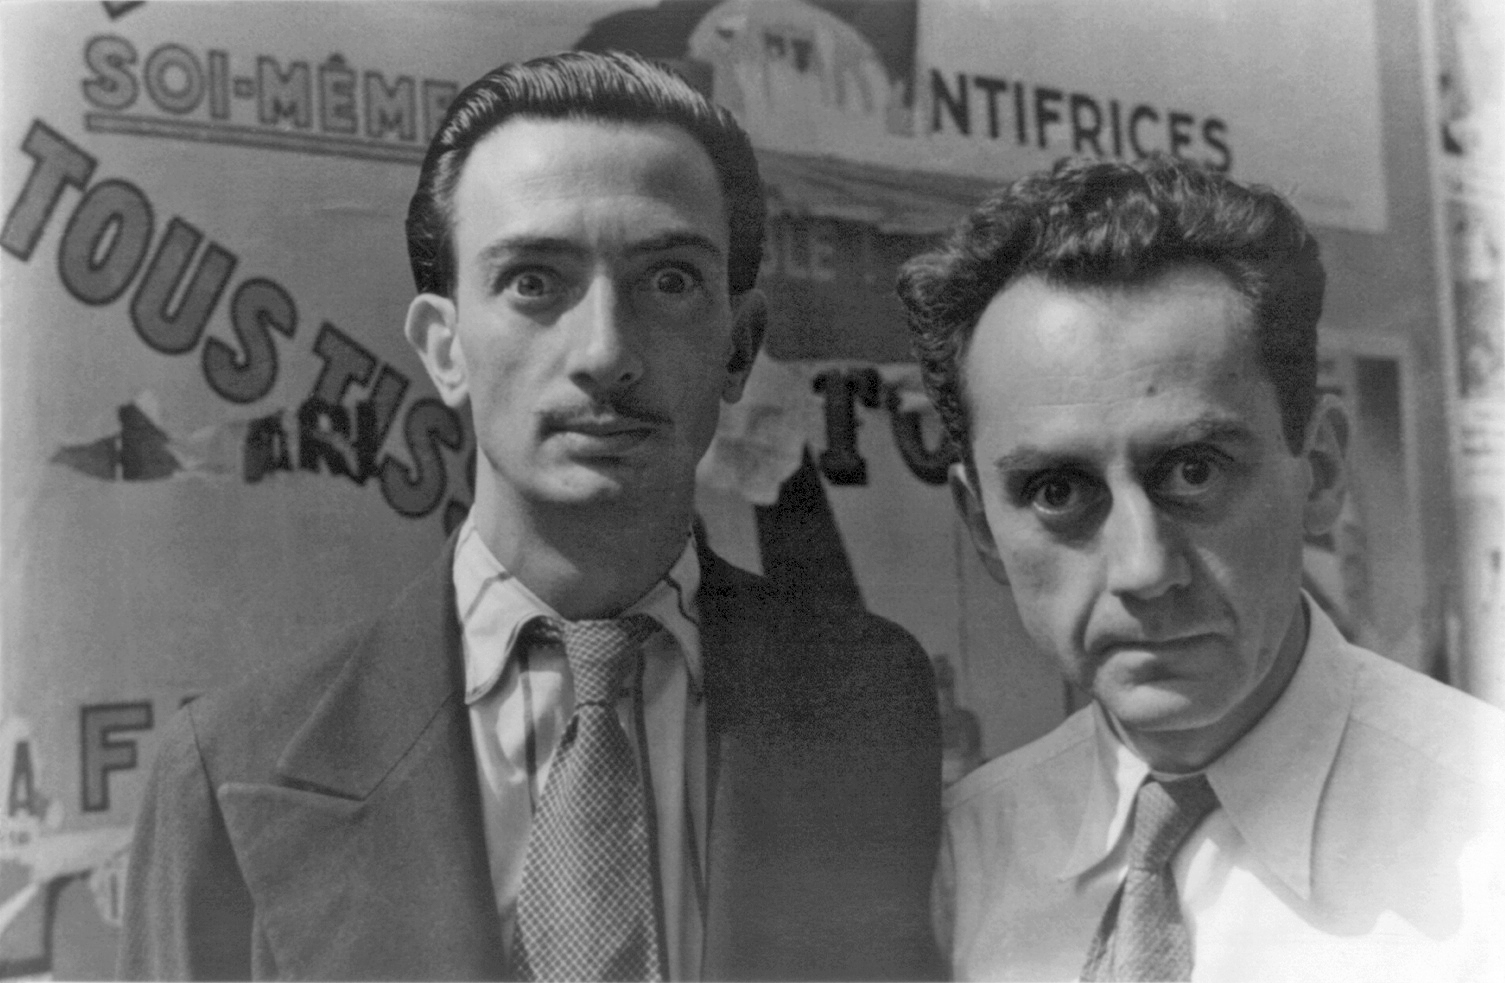 Dalí (left) and Man Ray in Paris, June, 1934